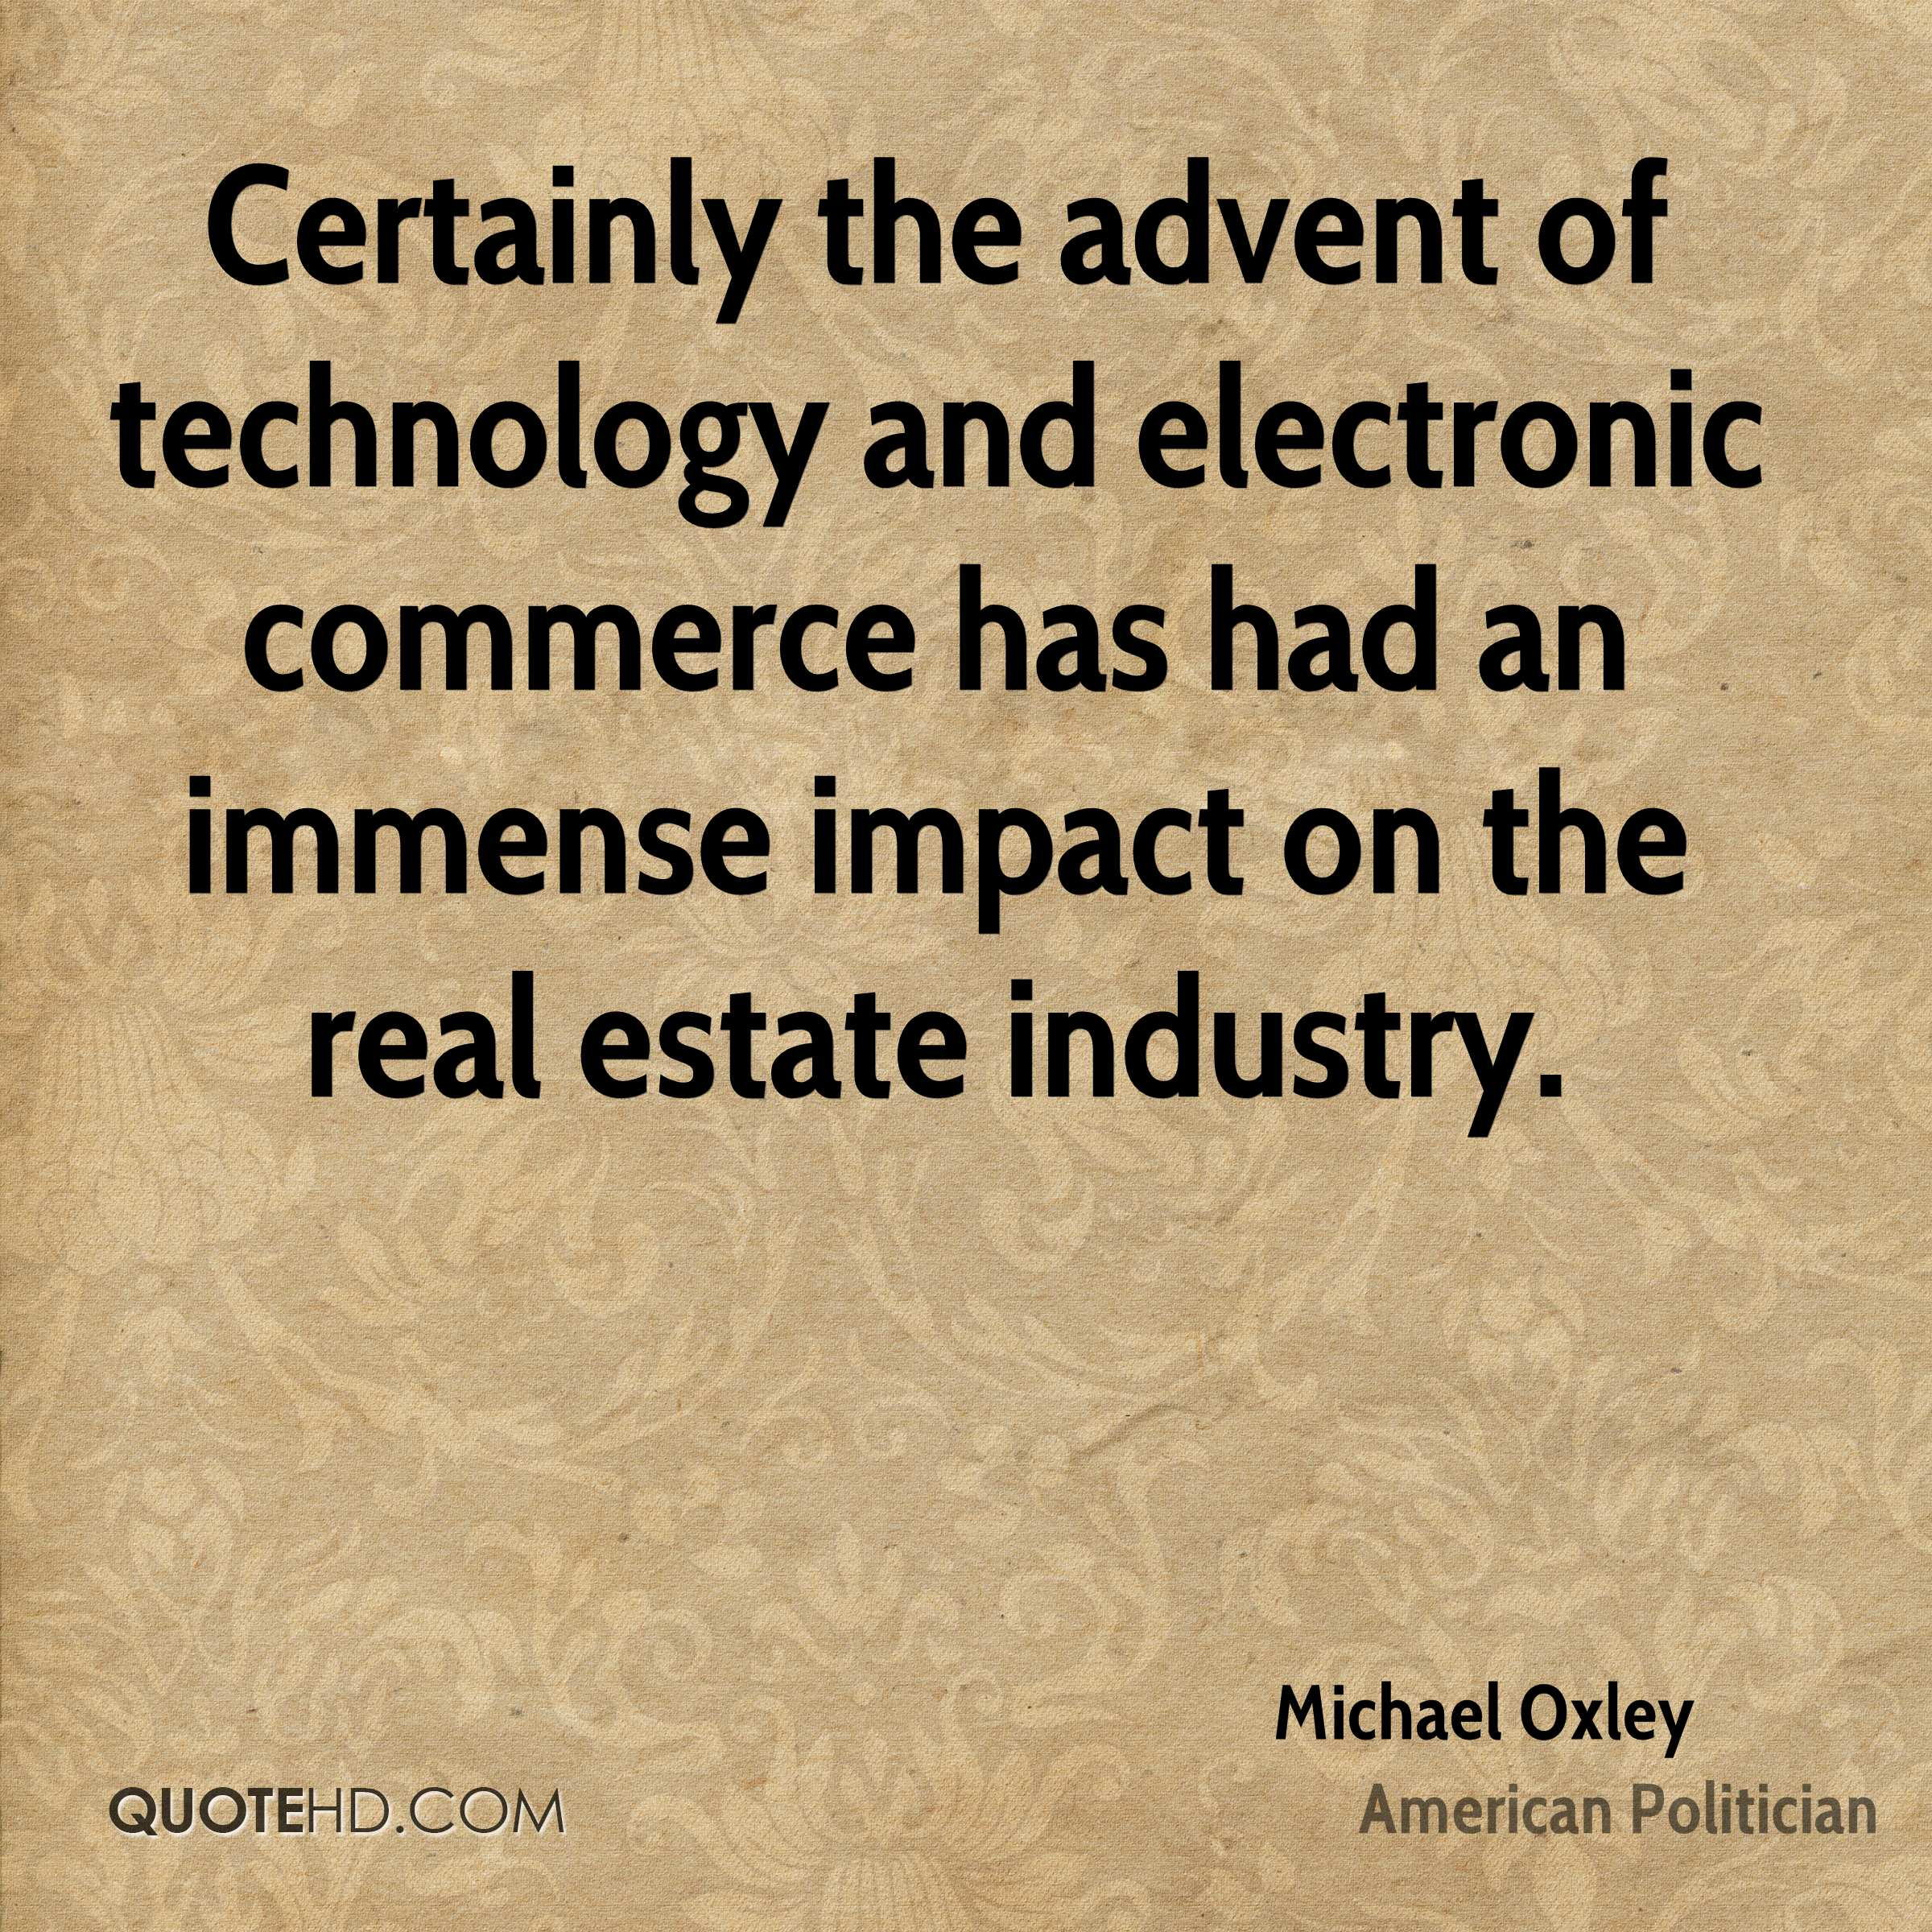 Certainly the advent of technology and electronic commerce has had an immense impact on the real estate industry.